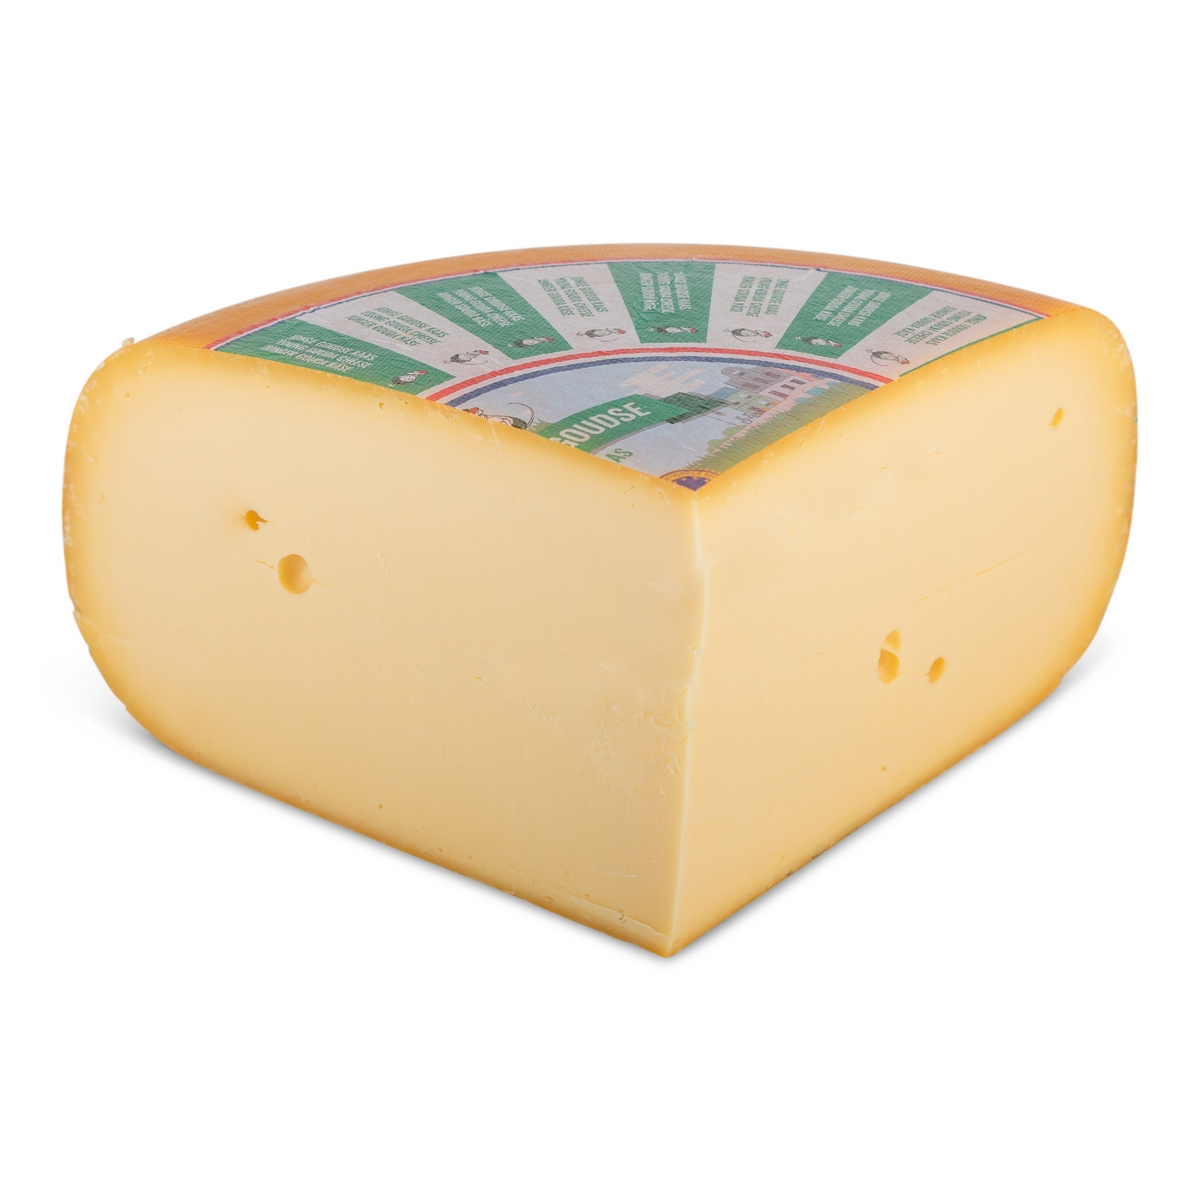 Young cheese (+/- 4 weeks matured)